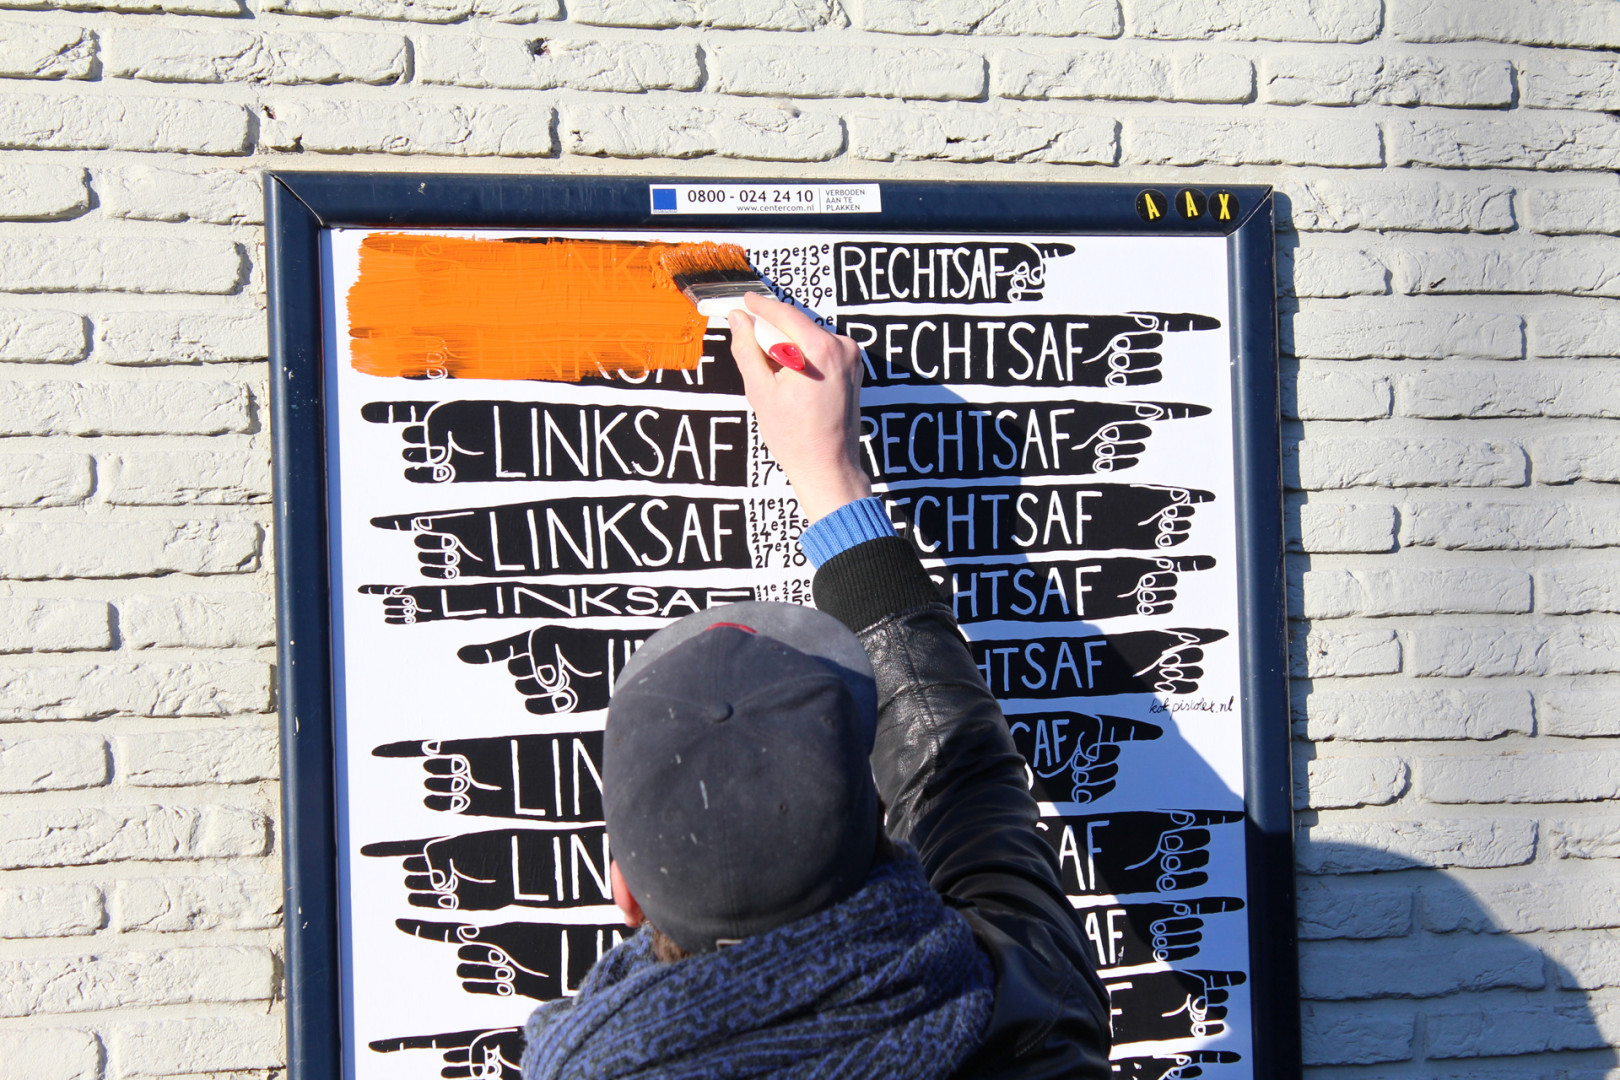 Transforming a poster campaign into a wayfinding system